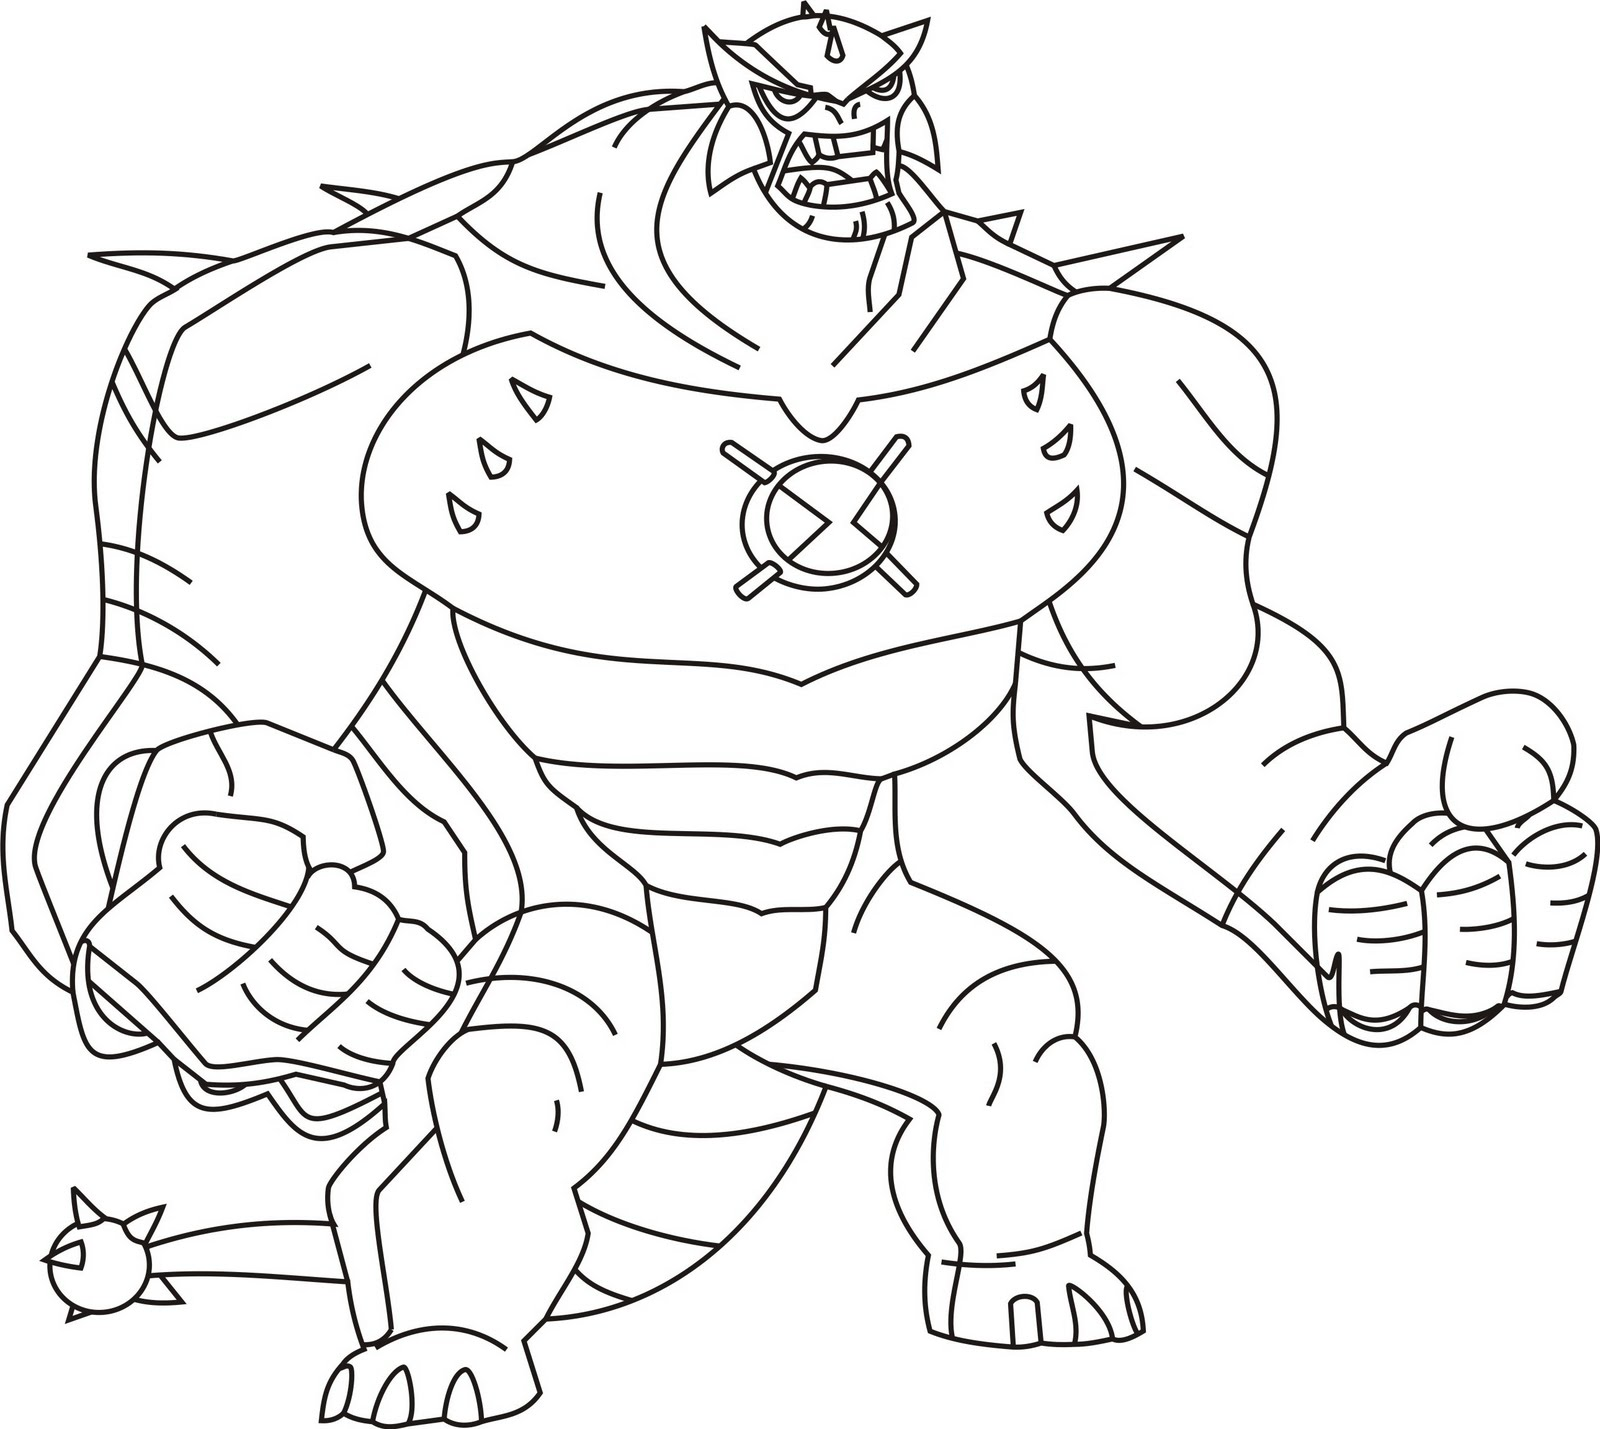 Ben 10 Coloring Pages Coloring Kids Benten Coloring Pages